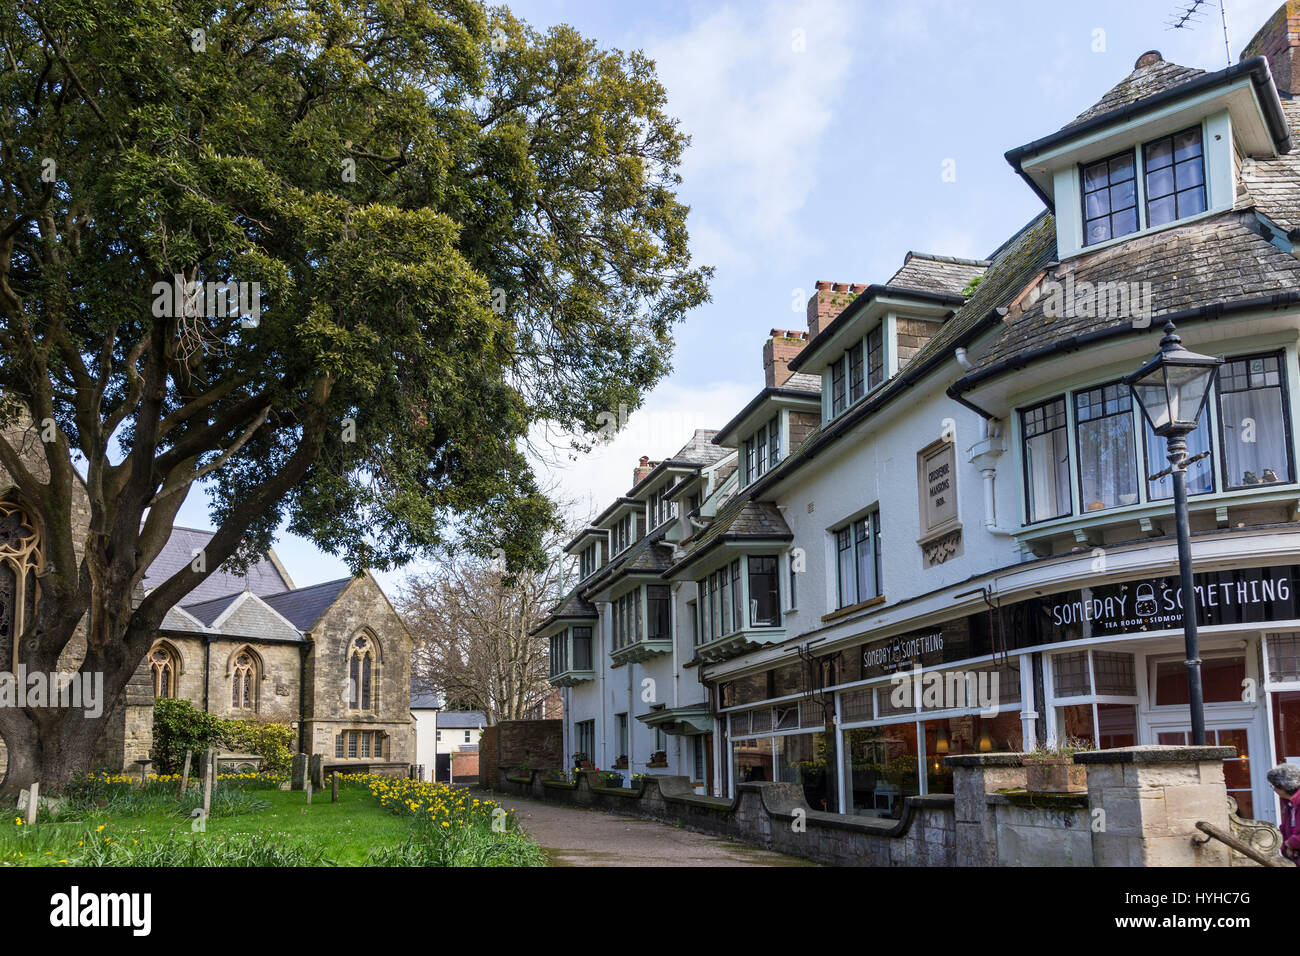 View of Church Lane,Sidmouth,a walkway from Church Street, alongside the parish church of St Giles and St Nicholas. - Stock Image